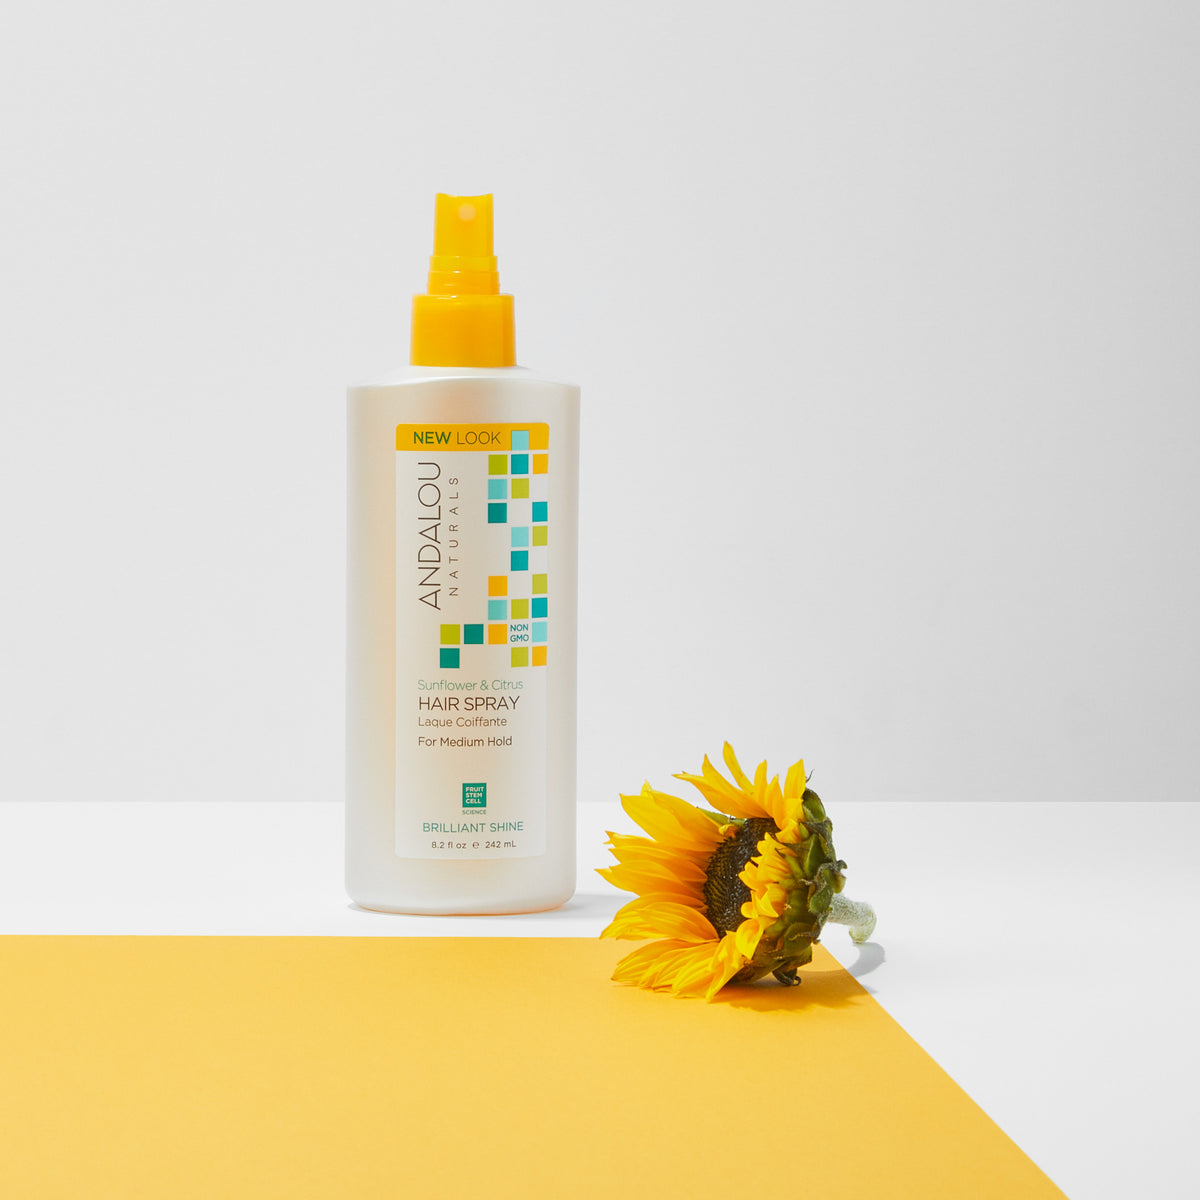 Sunflower & Citrus Brilliant Shine Hair Spray and sunflower